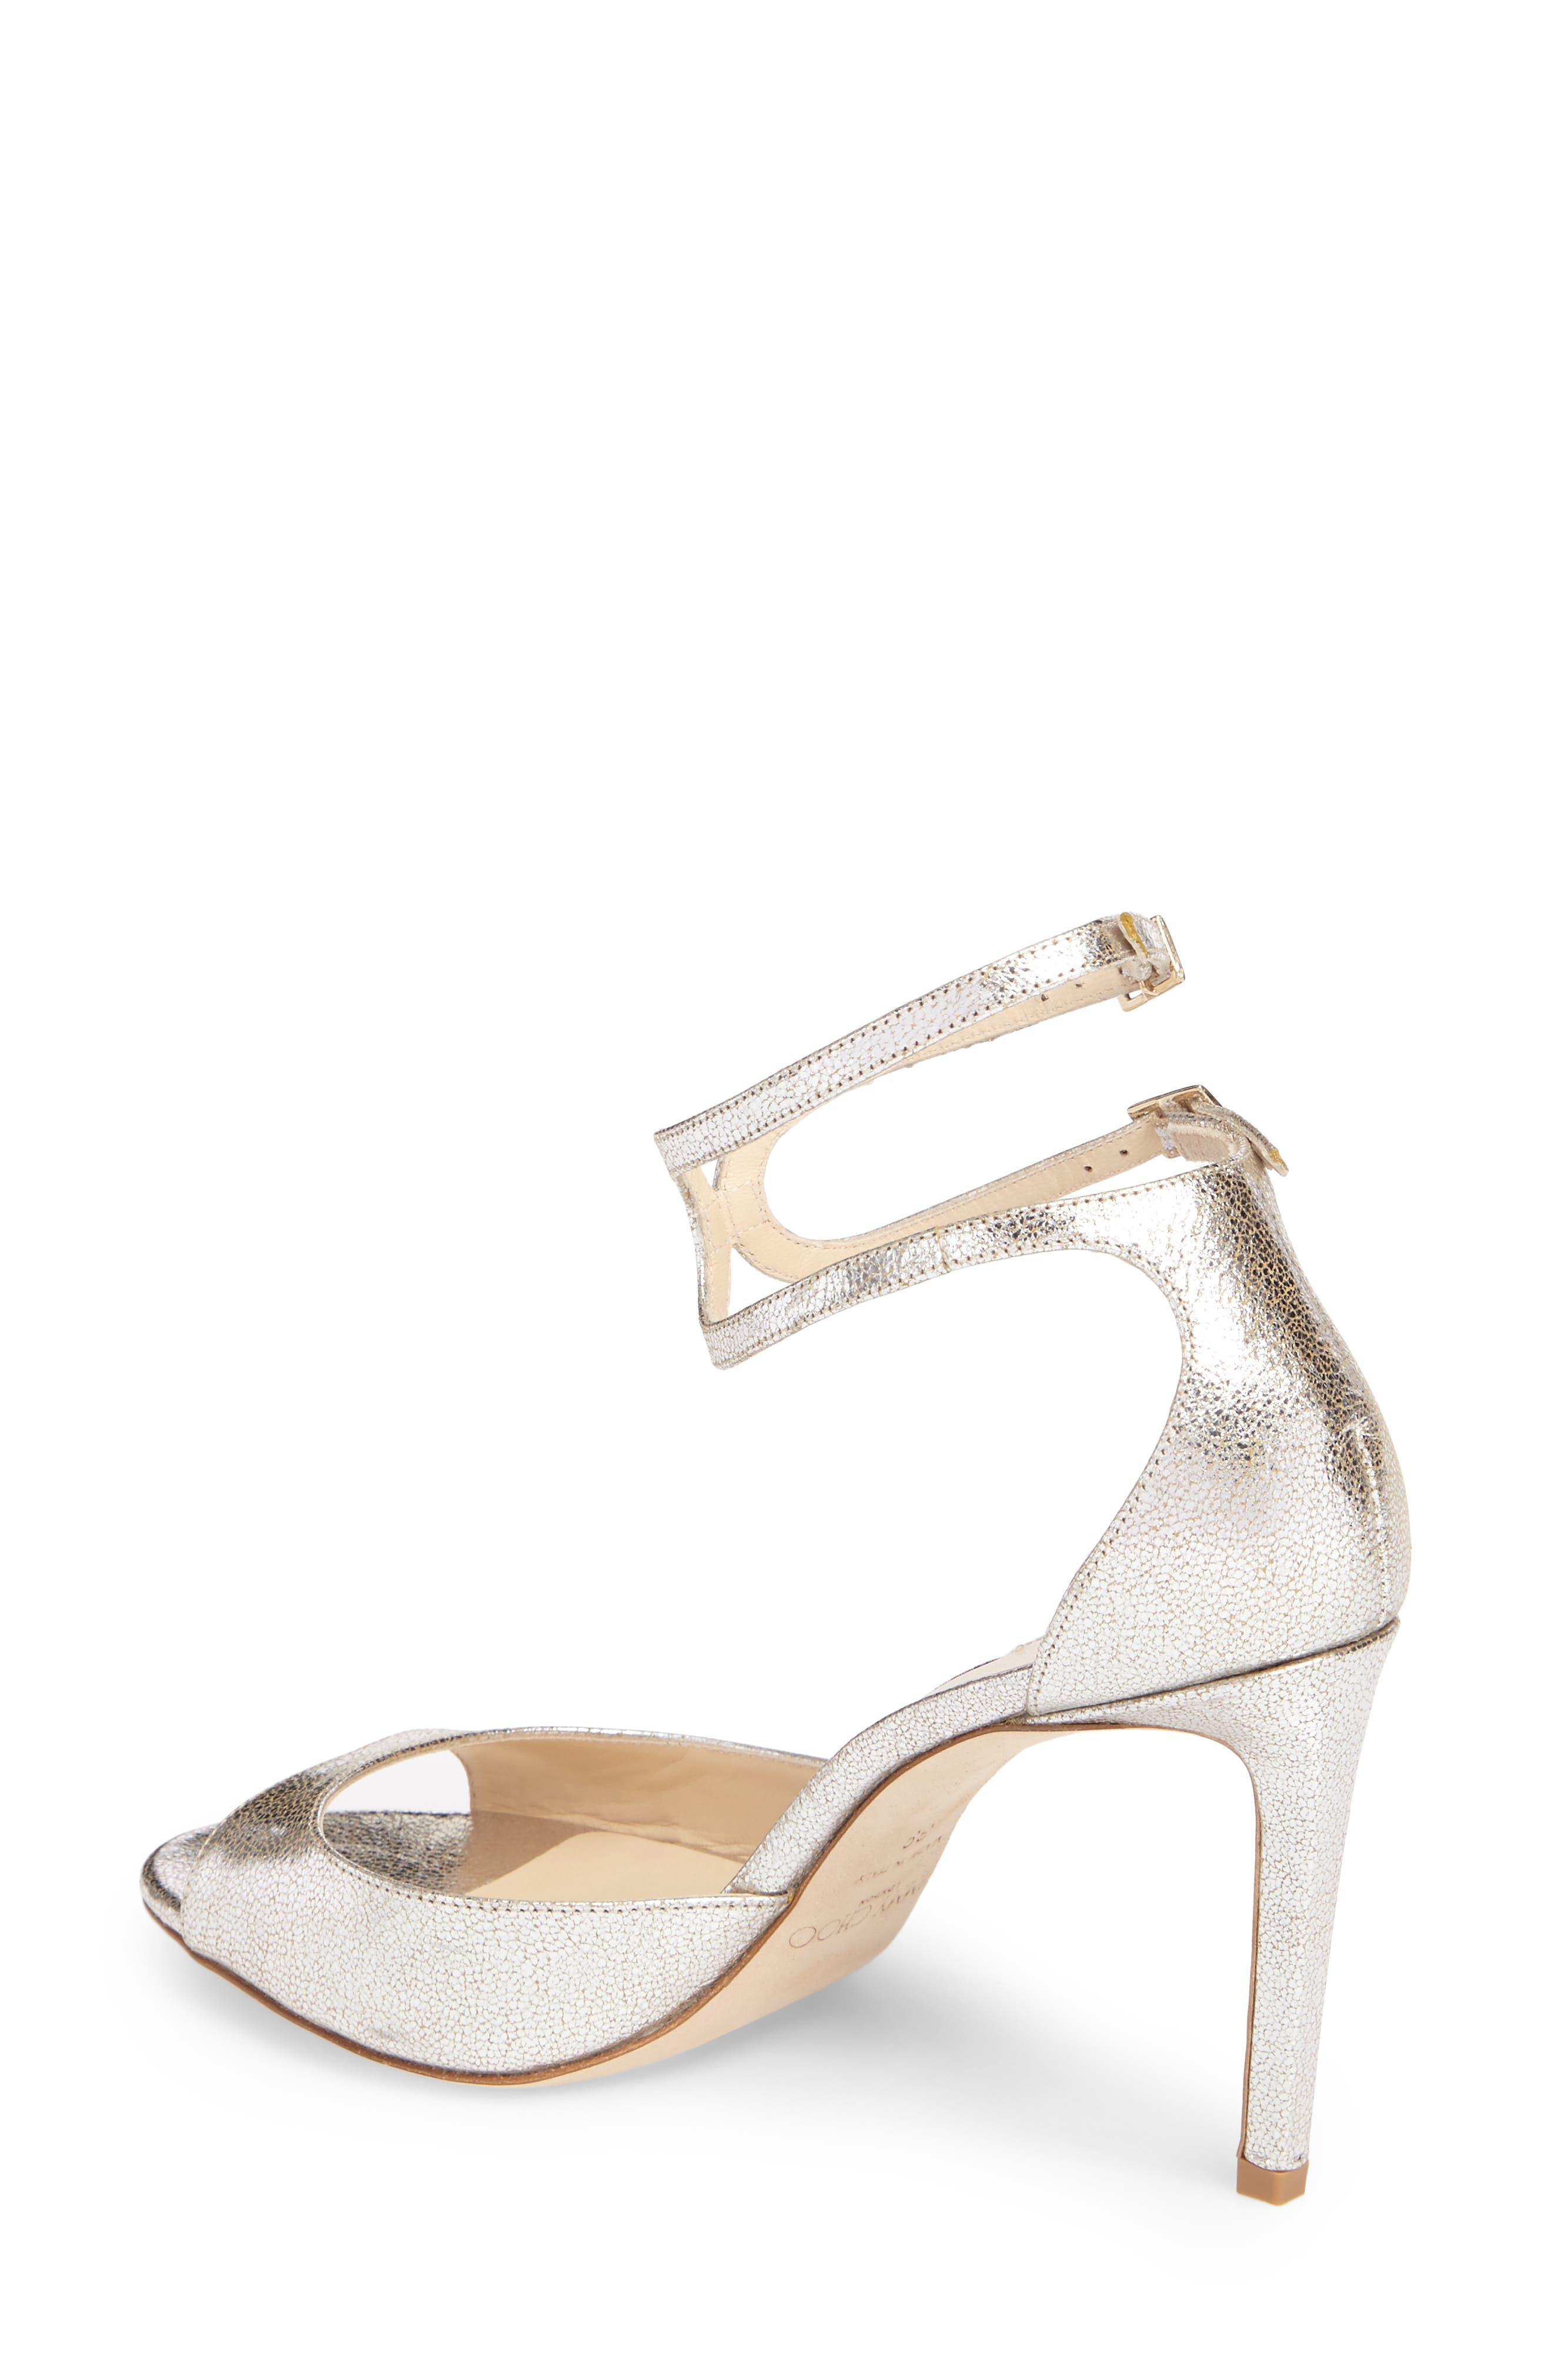 Alternate Image 2  - Jimmy Choo Lane d'Orsay Sandal (Women)